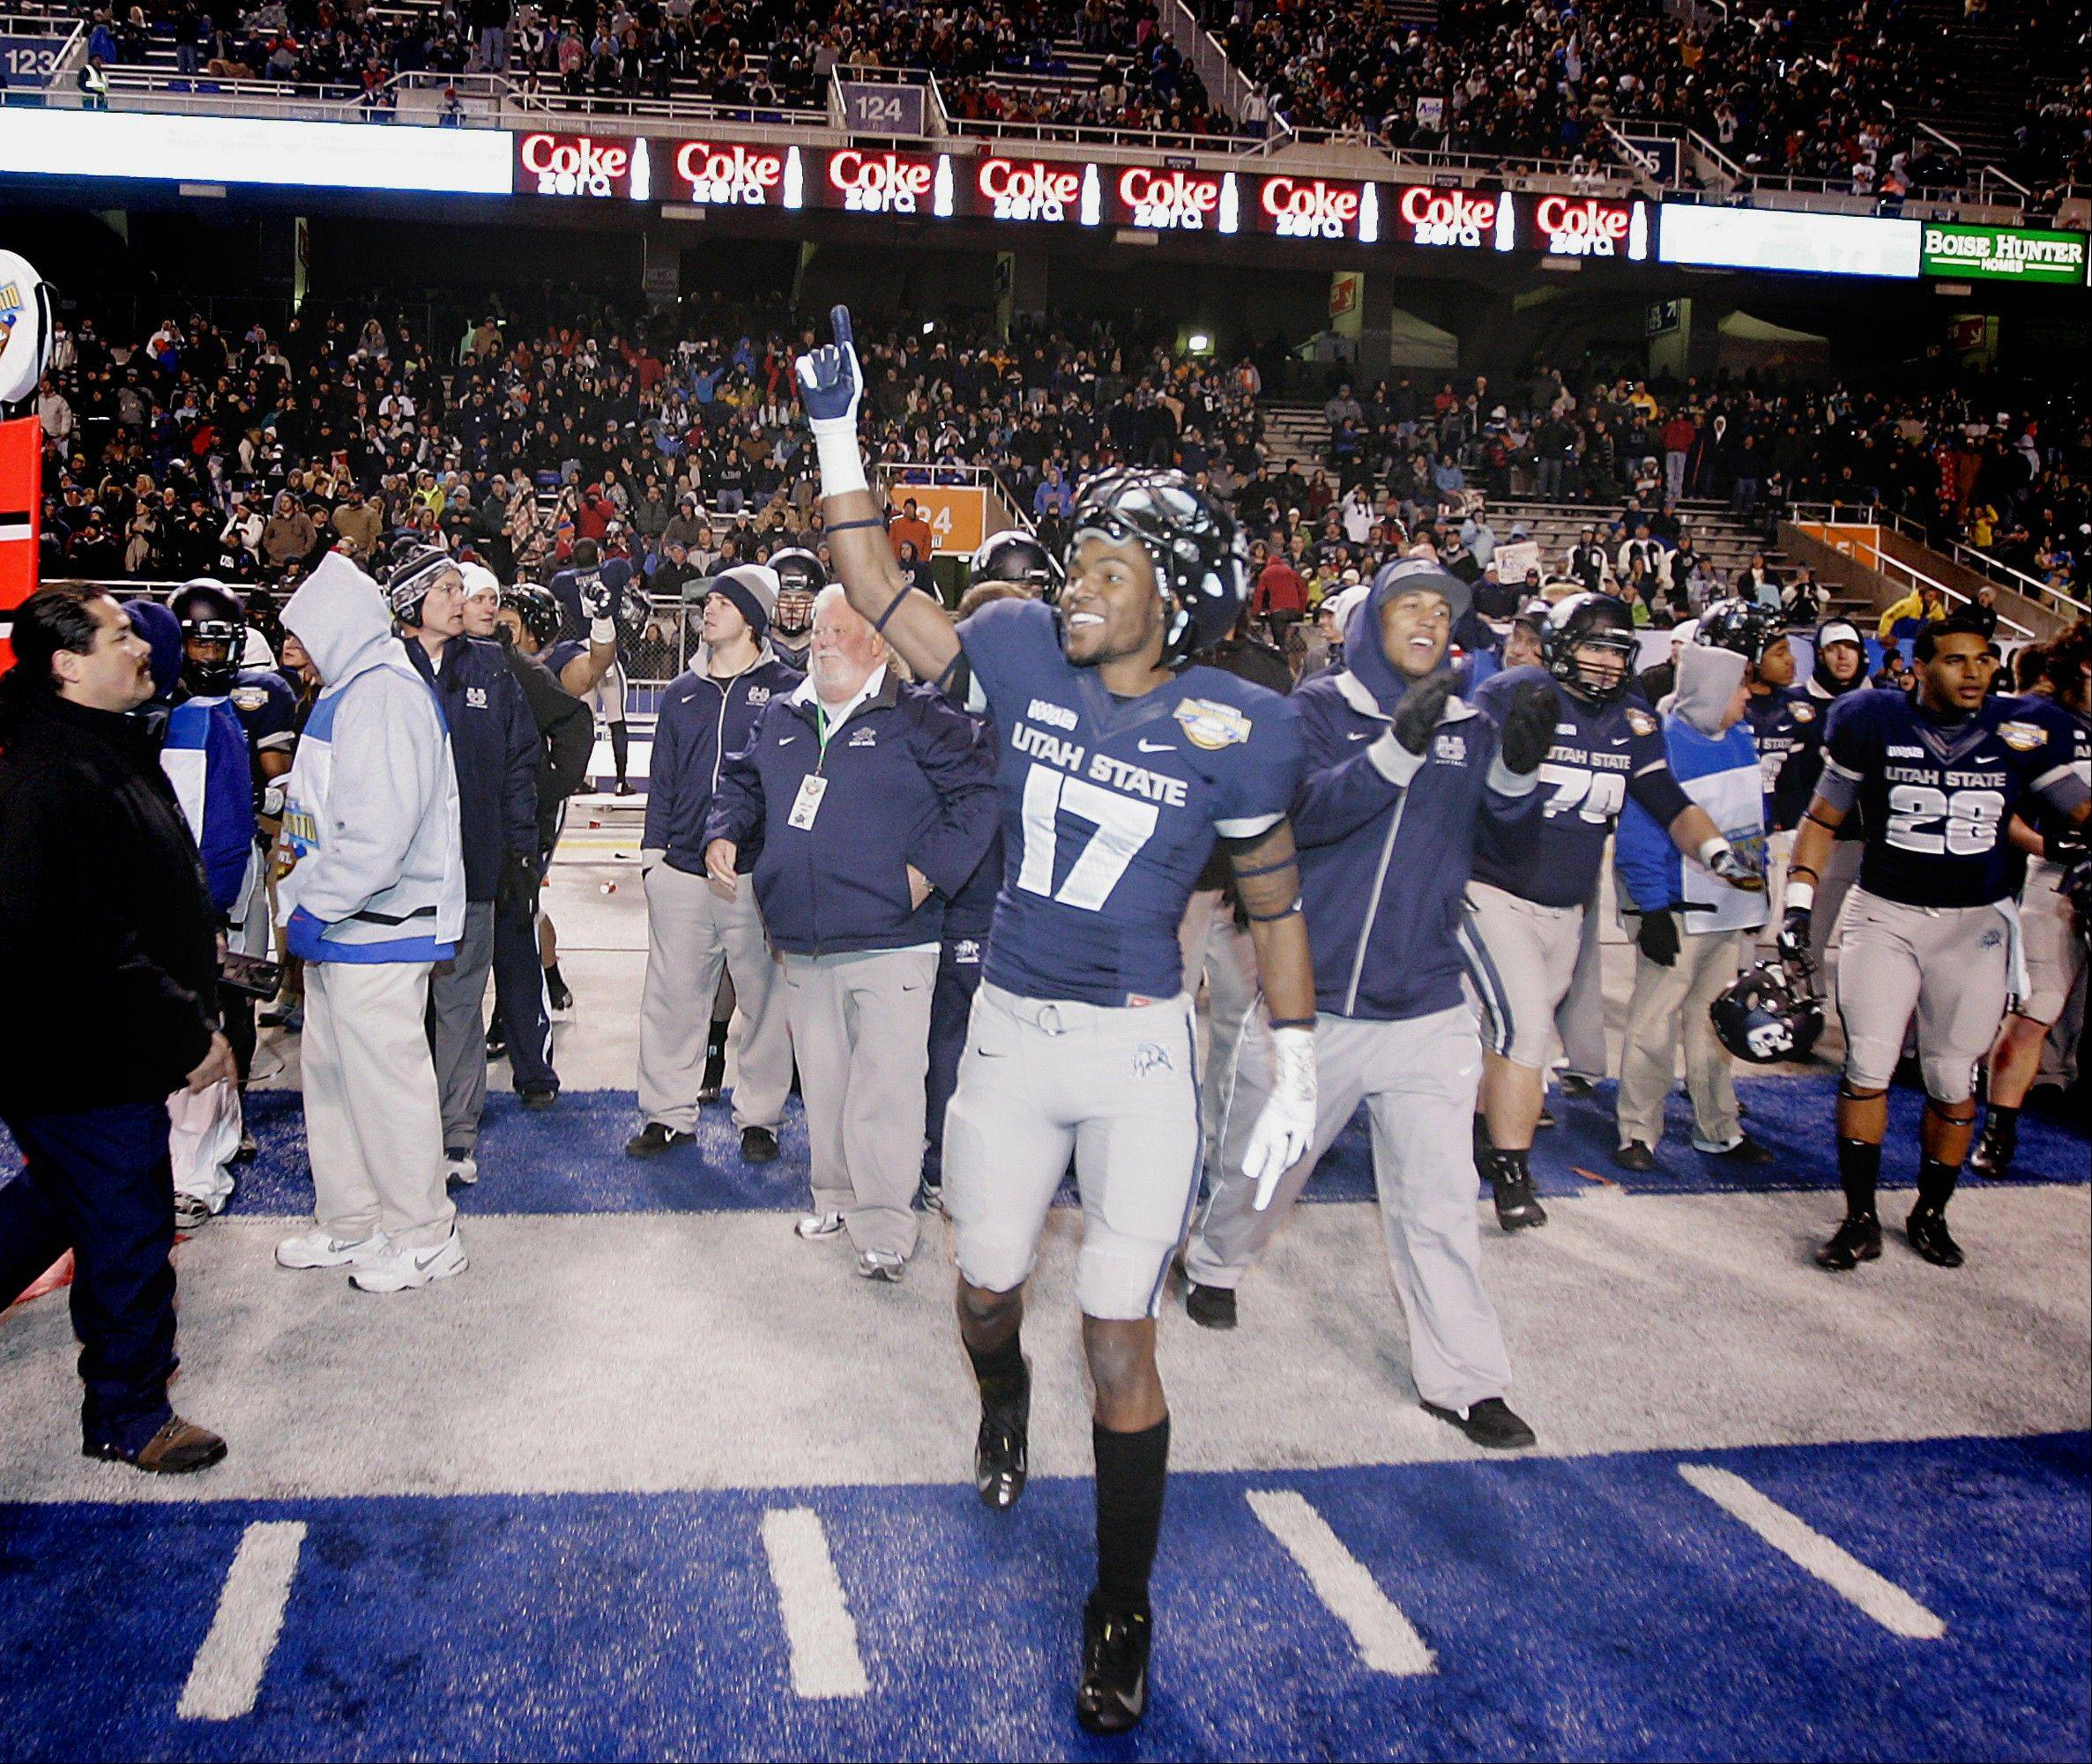 Utah State�s Jeff Maning (17) celebrates Saturday after defeating Toledo 41-15 in the Famous Idaho Potato Bowl.